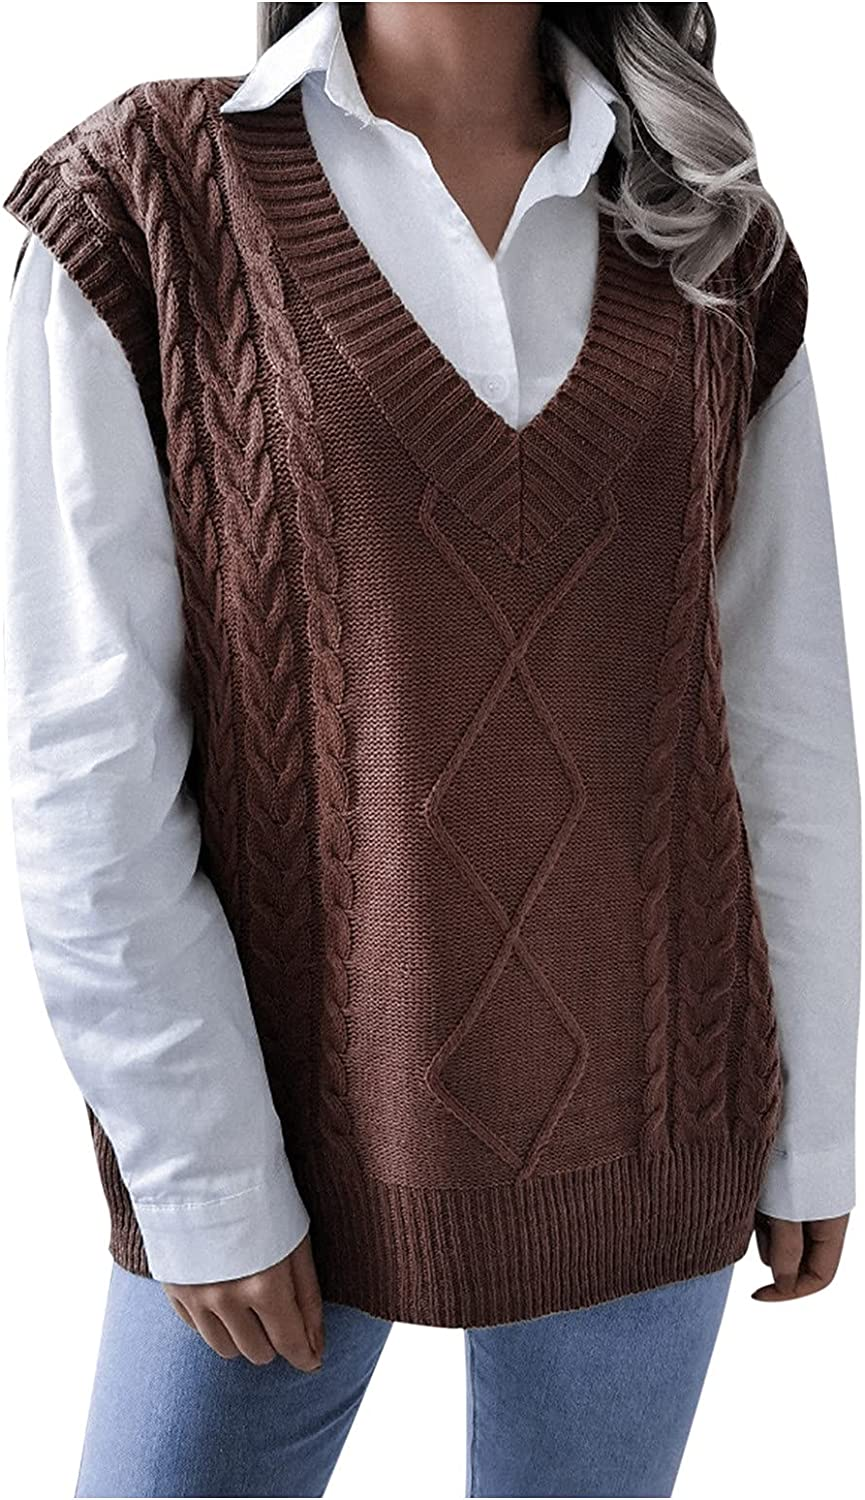 Women's Fashion Solid Cool School-Style Loose Super Soft Comfy Knitted Sweater Vest Base Top